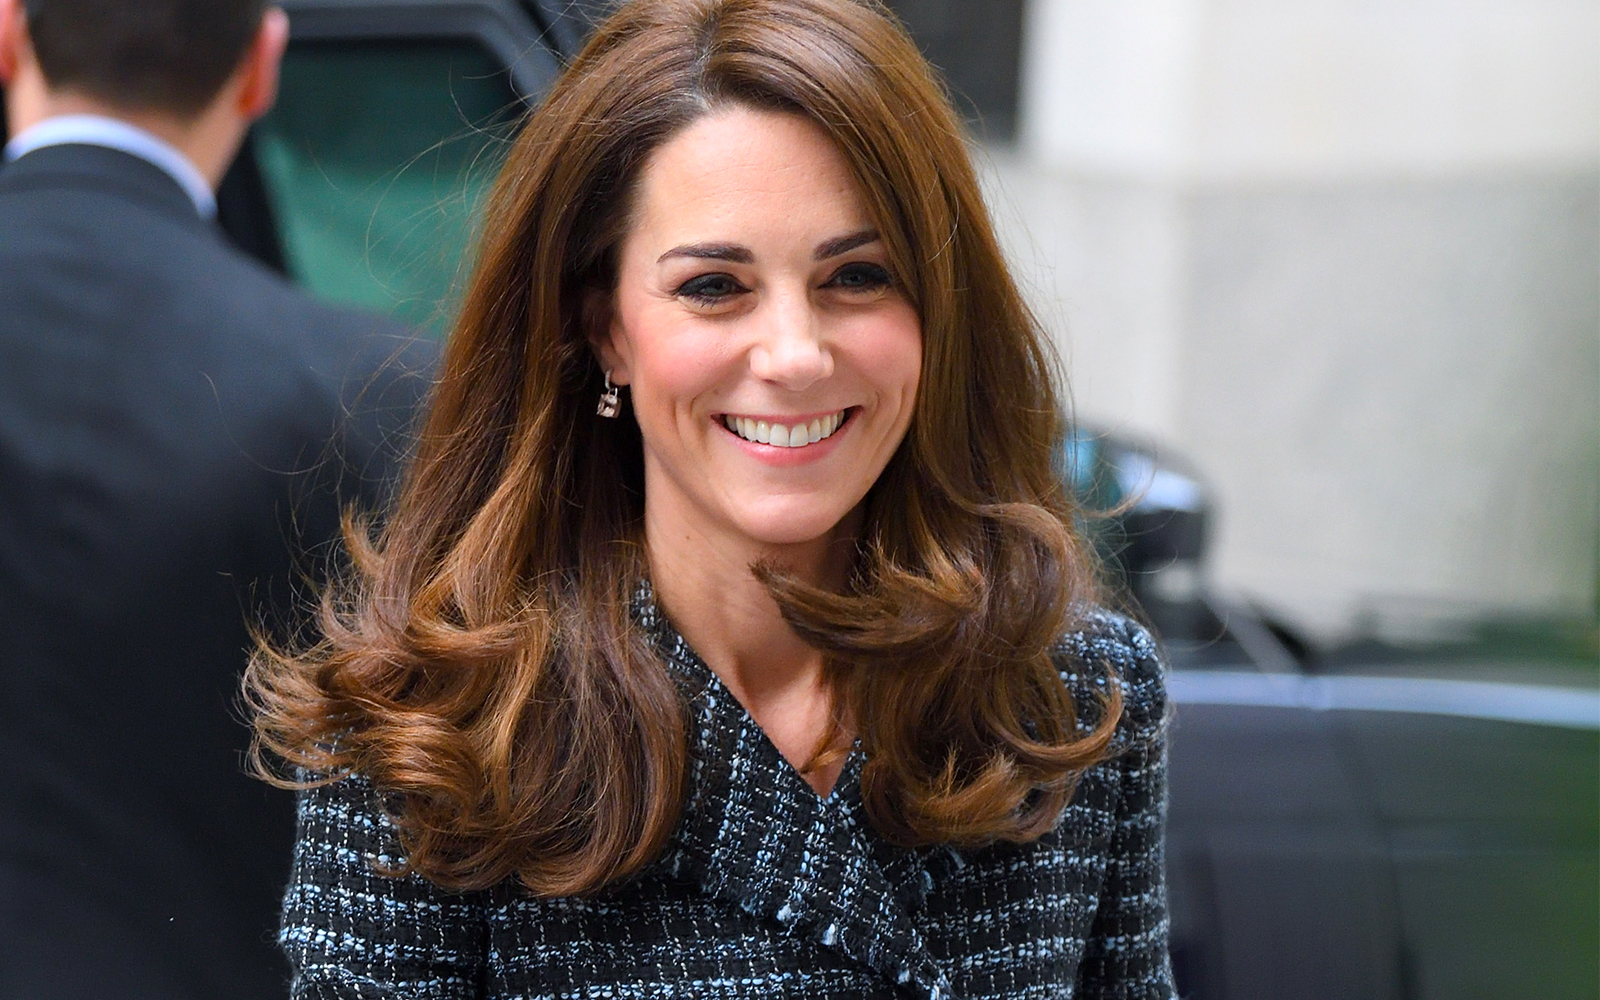 Kate Middleton's Favorite Sneaker Brand Is on Super-sale Right Now